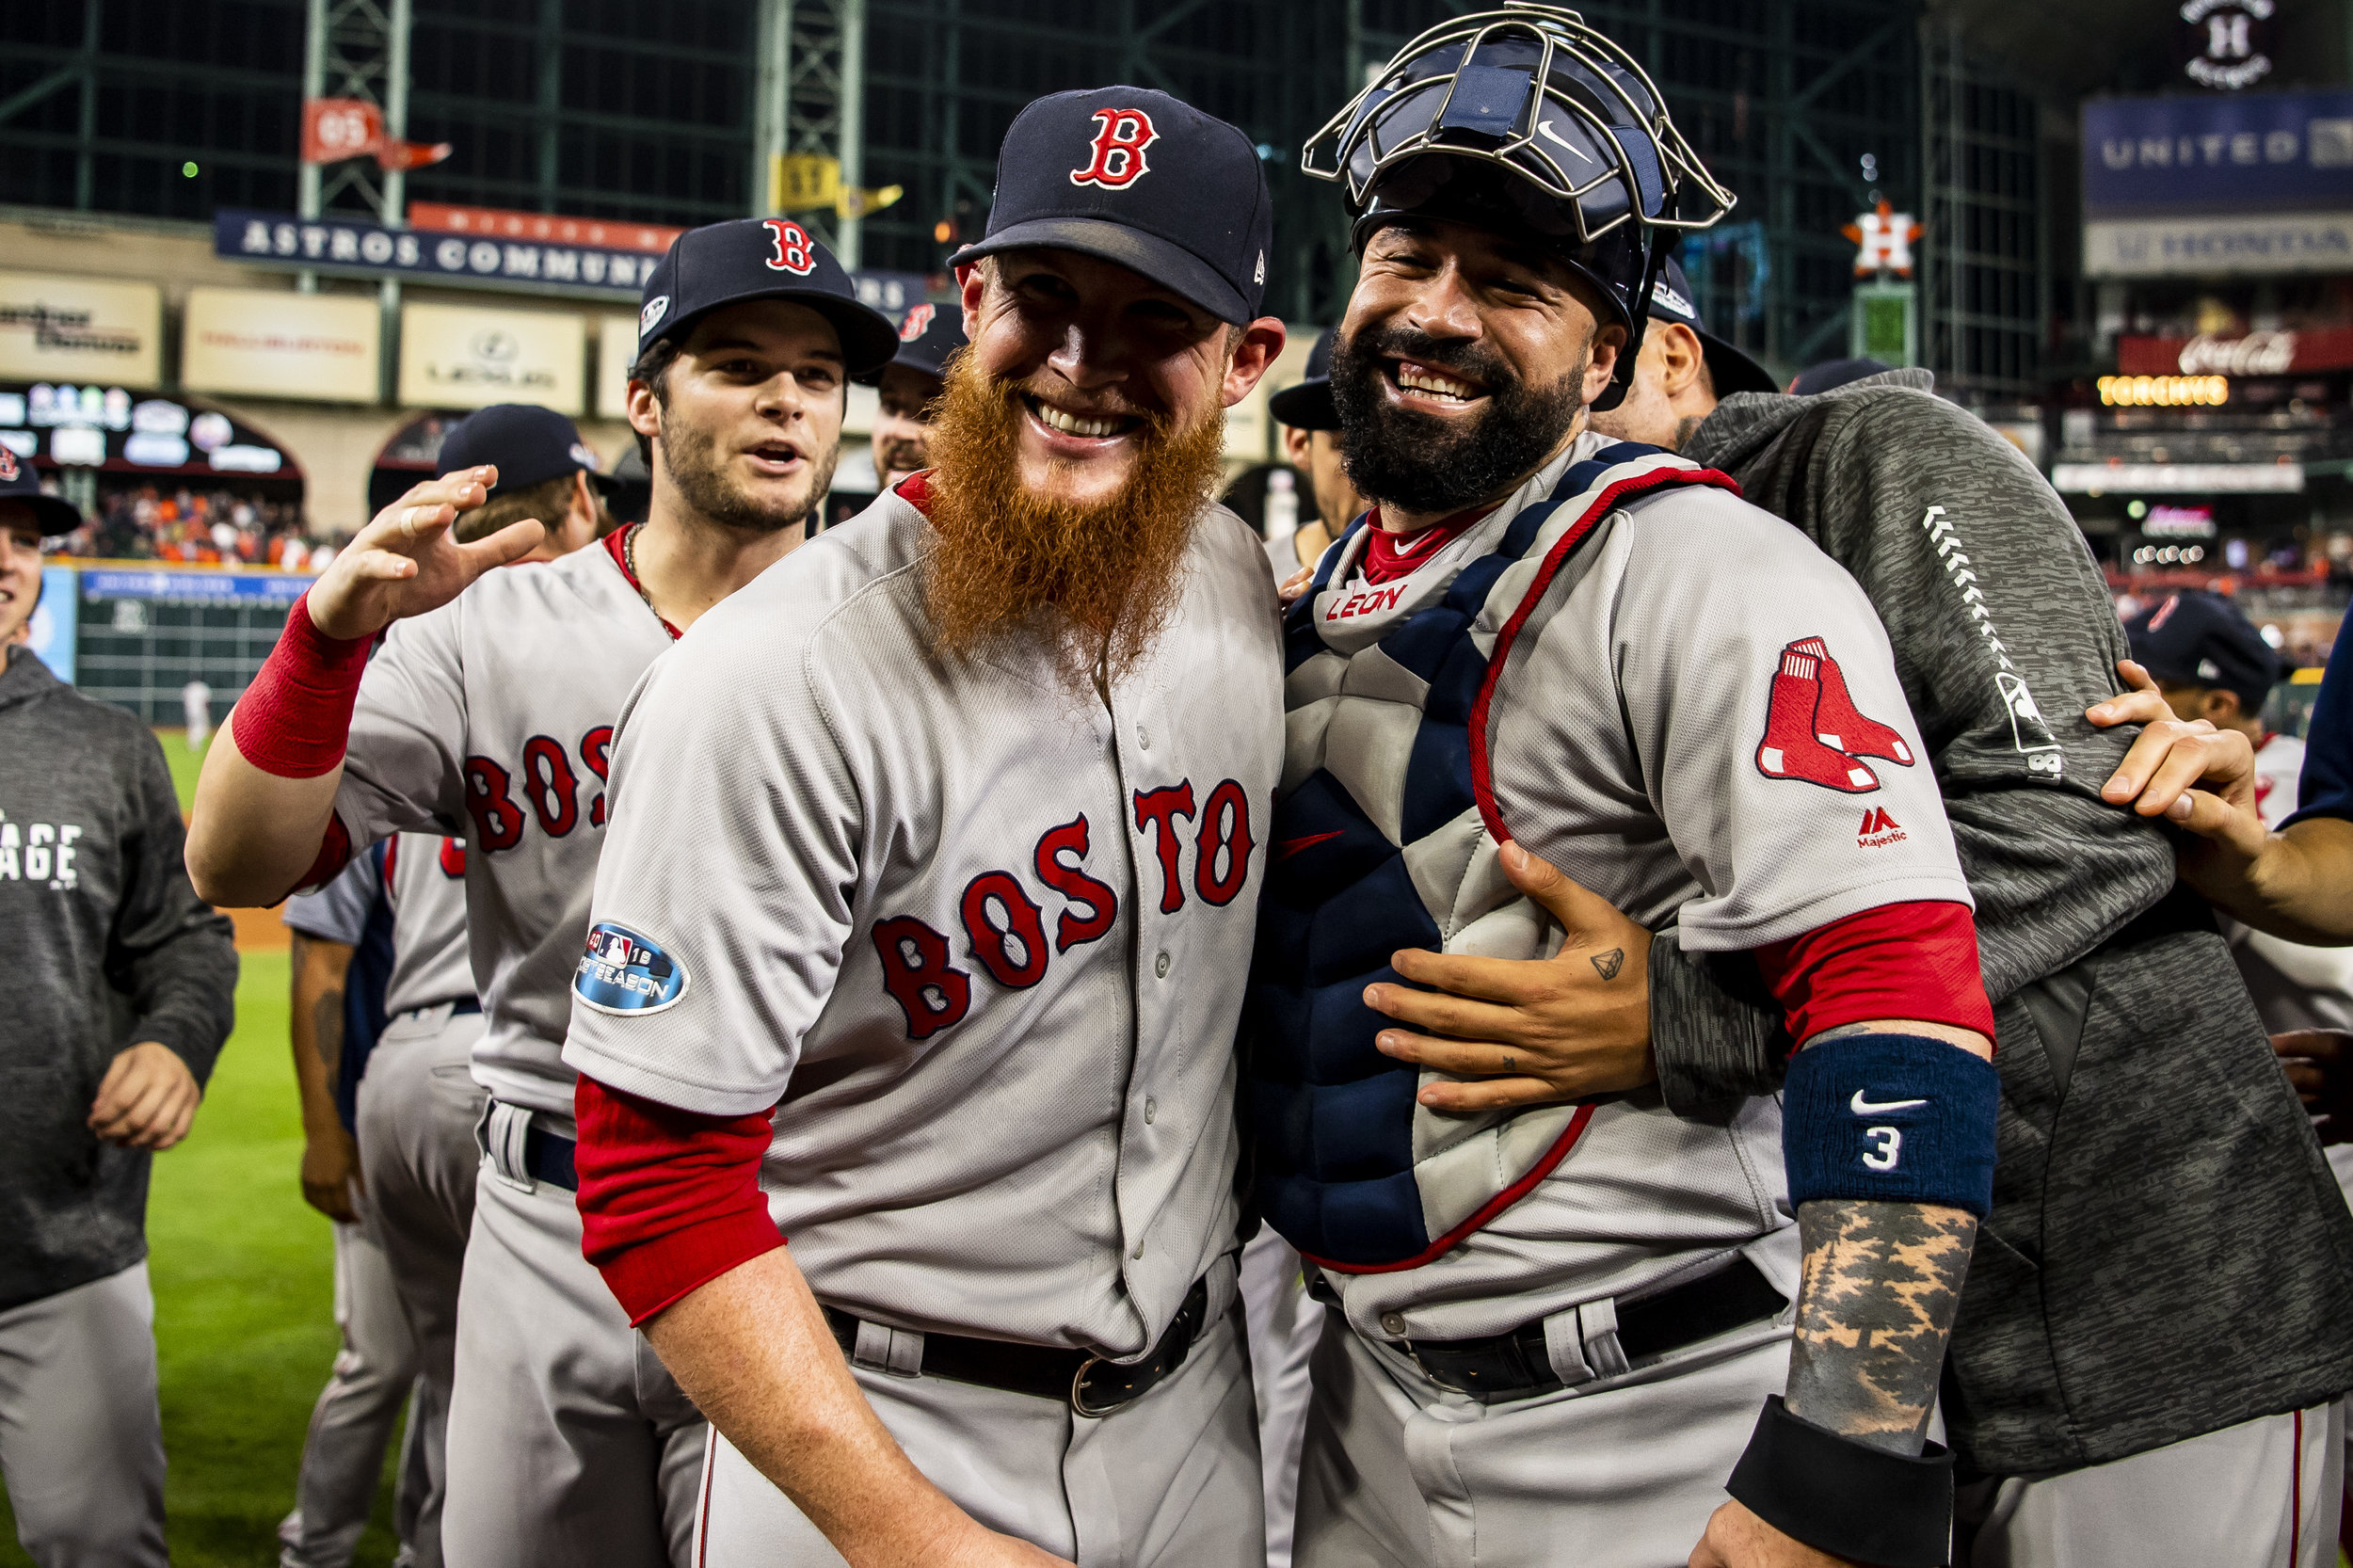 October 18, 2018, Houston, TX: Boston Red Sox pitcher Craig Kimbrel hugs Boston Red Sox catcher Sandy Leon after the Boston Red Sox defeated the Houston Astros in Game 5 of the ALCS to advance to the World Series at Minute Maid Park in Houston, Texas on Thursday, October 18, 2018. (Photo by Matthew Thomas/Boston Red Sox)